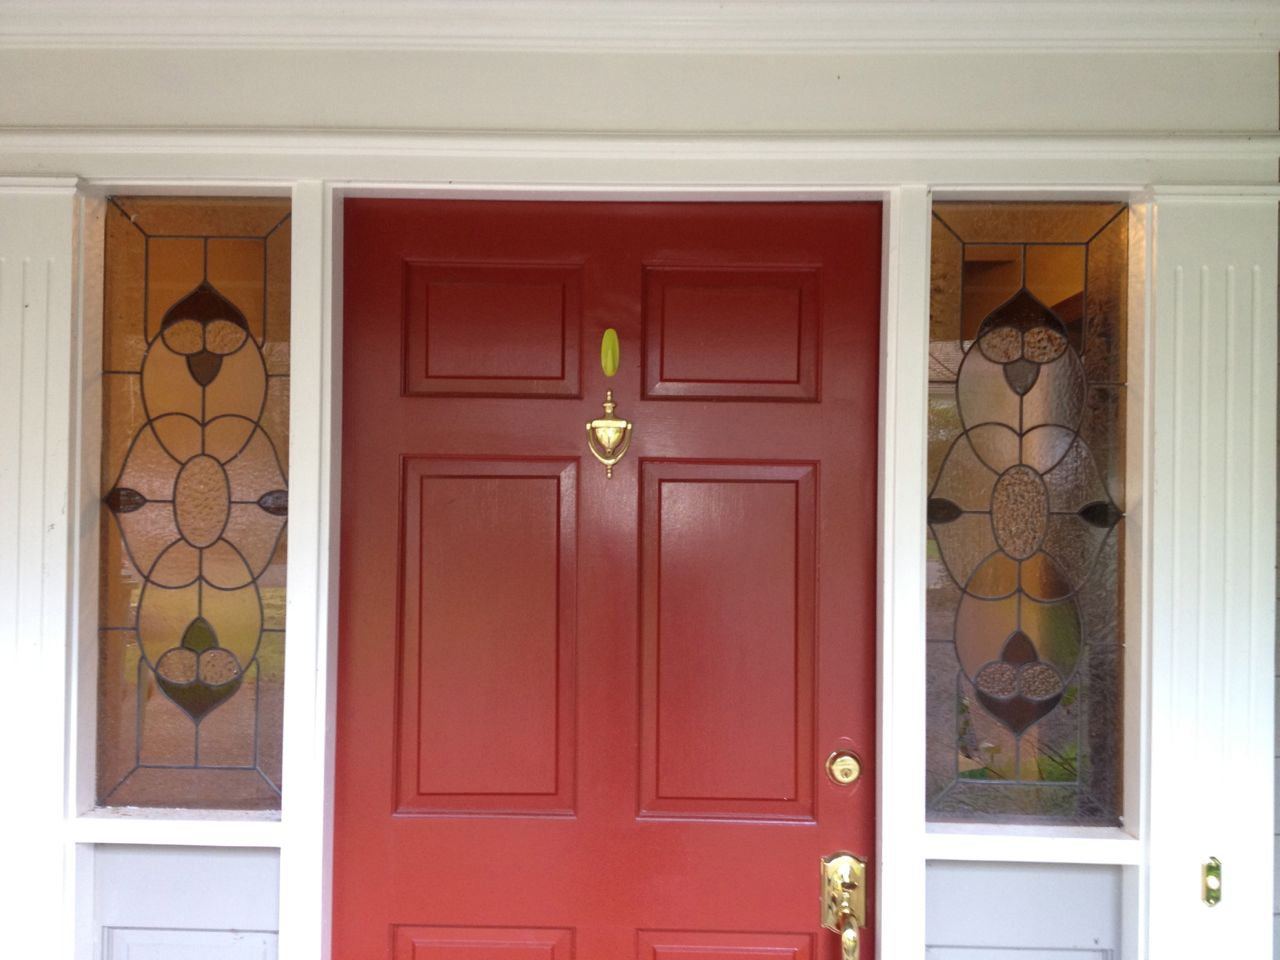 Home depot exterior door installation door installation for Home depot exterior door installation